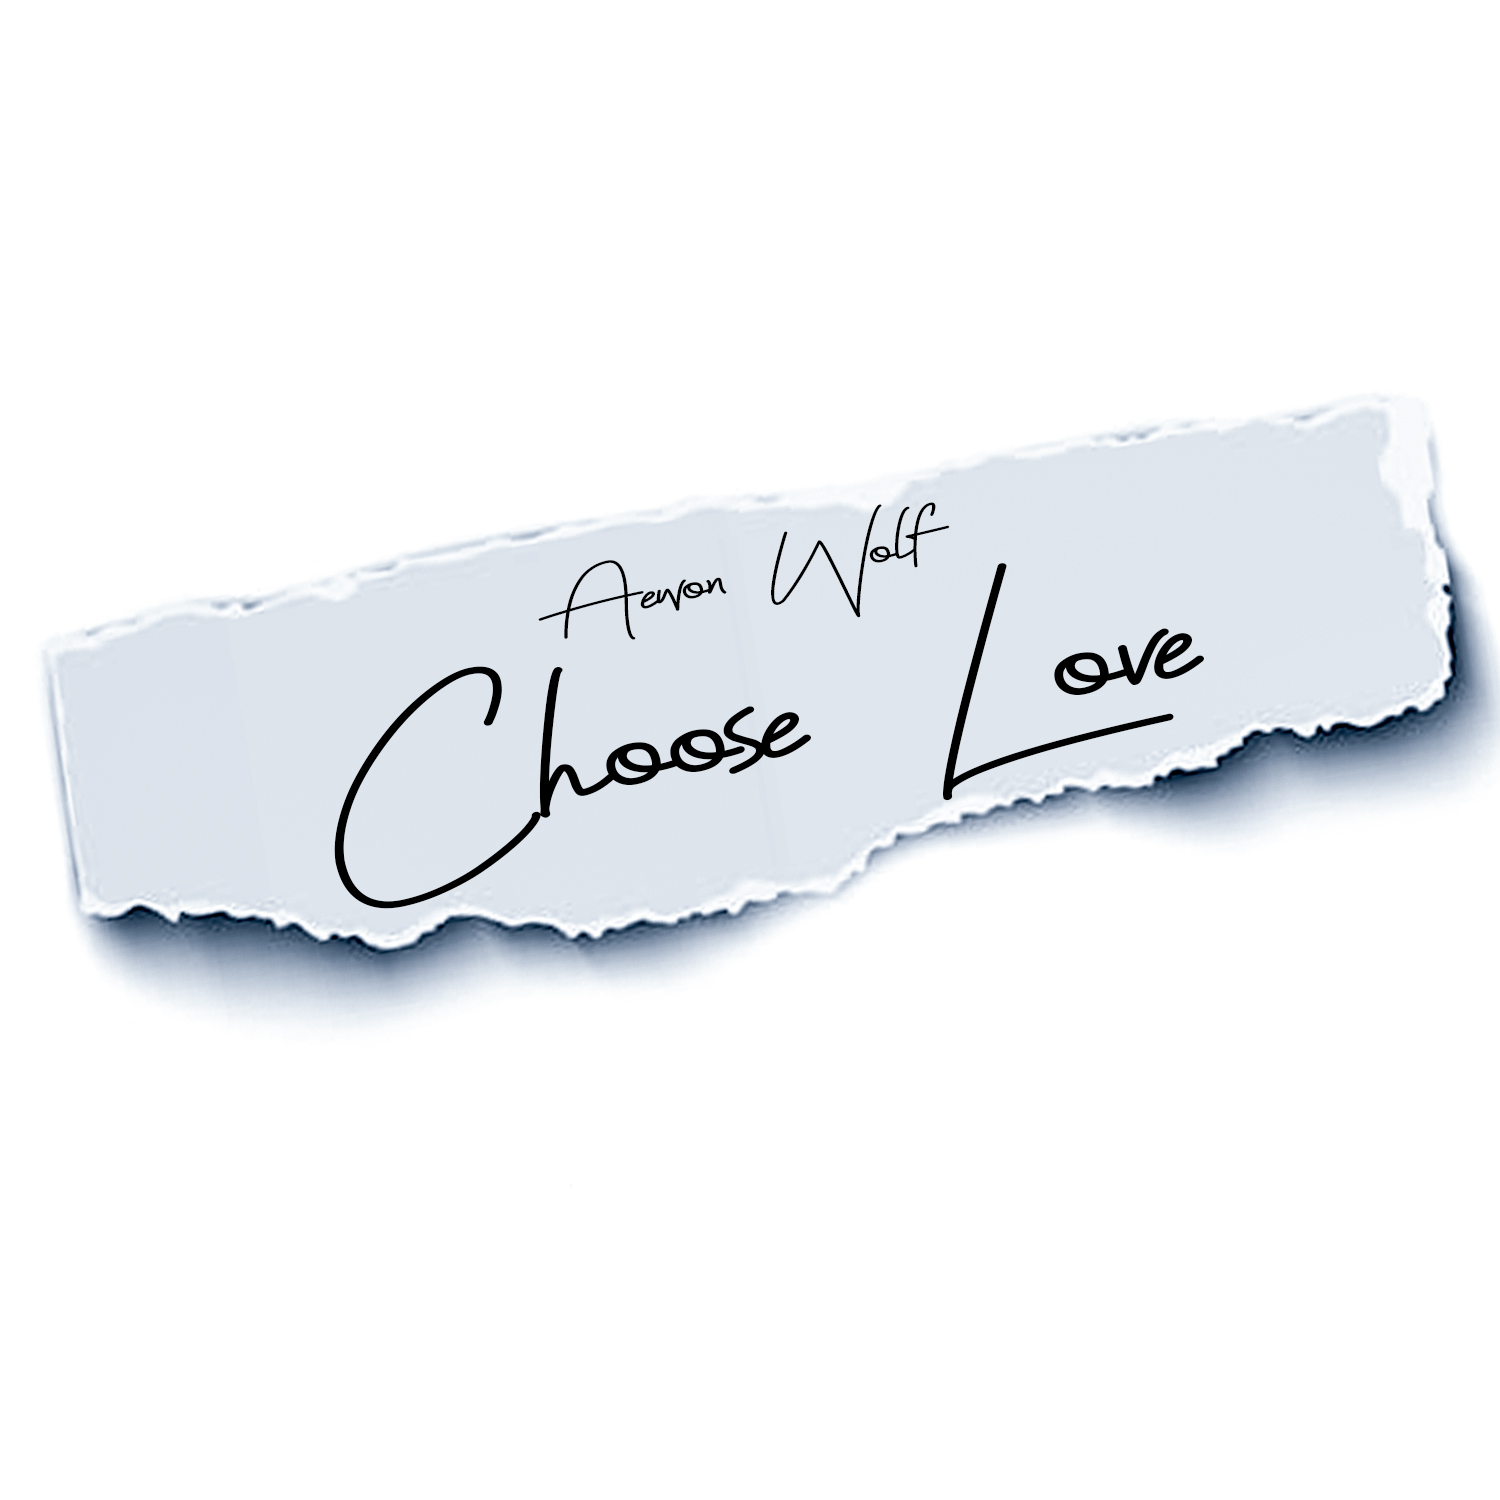 CHOOSE LOVE MIXTAPE COVER